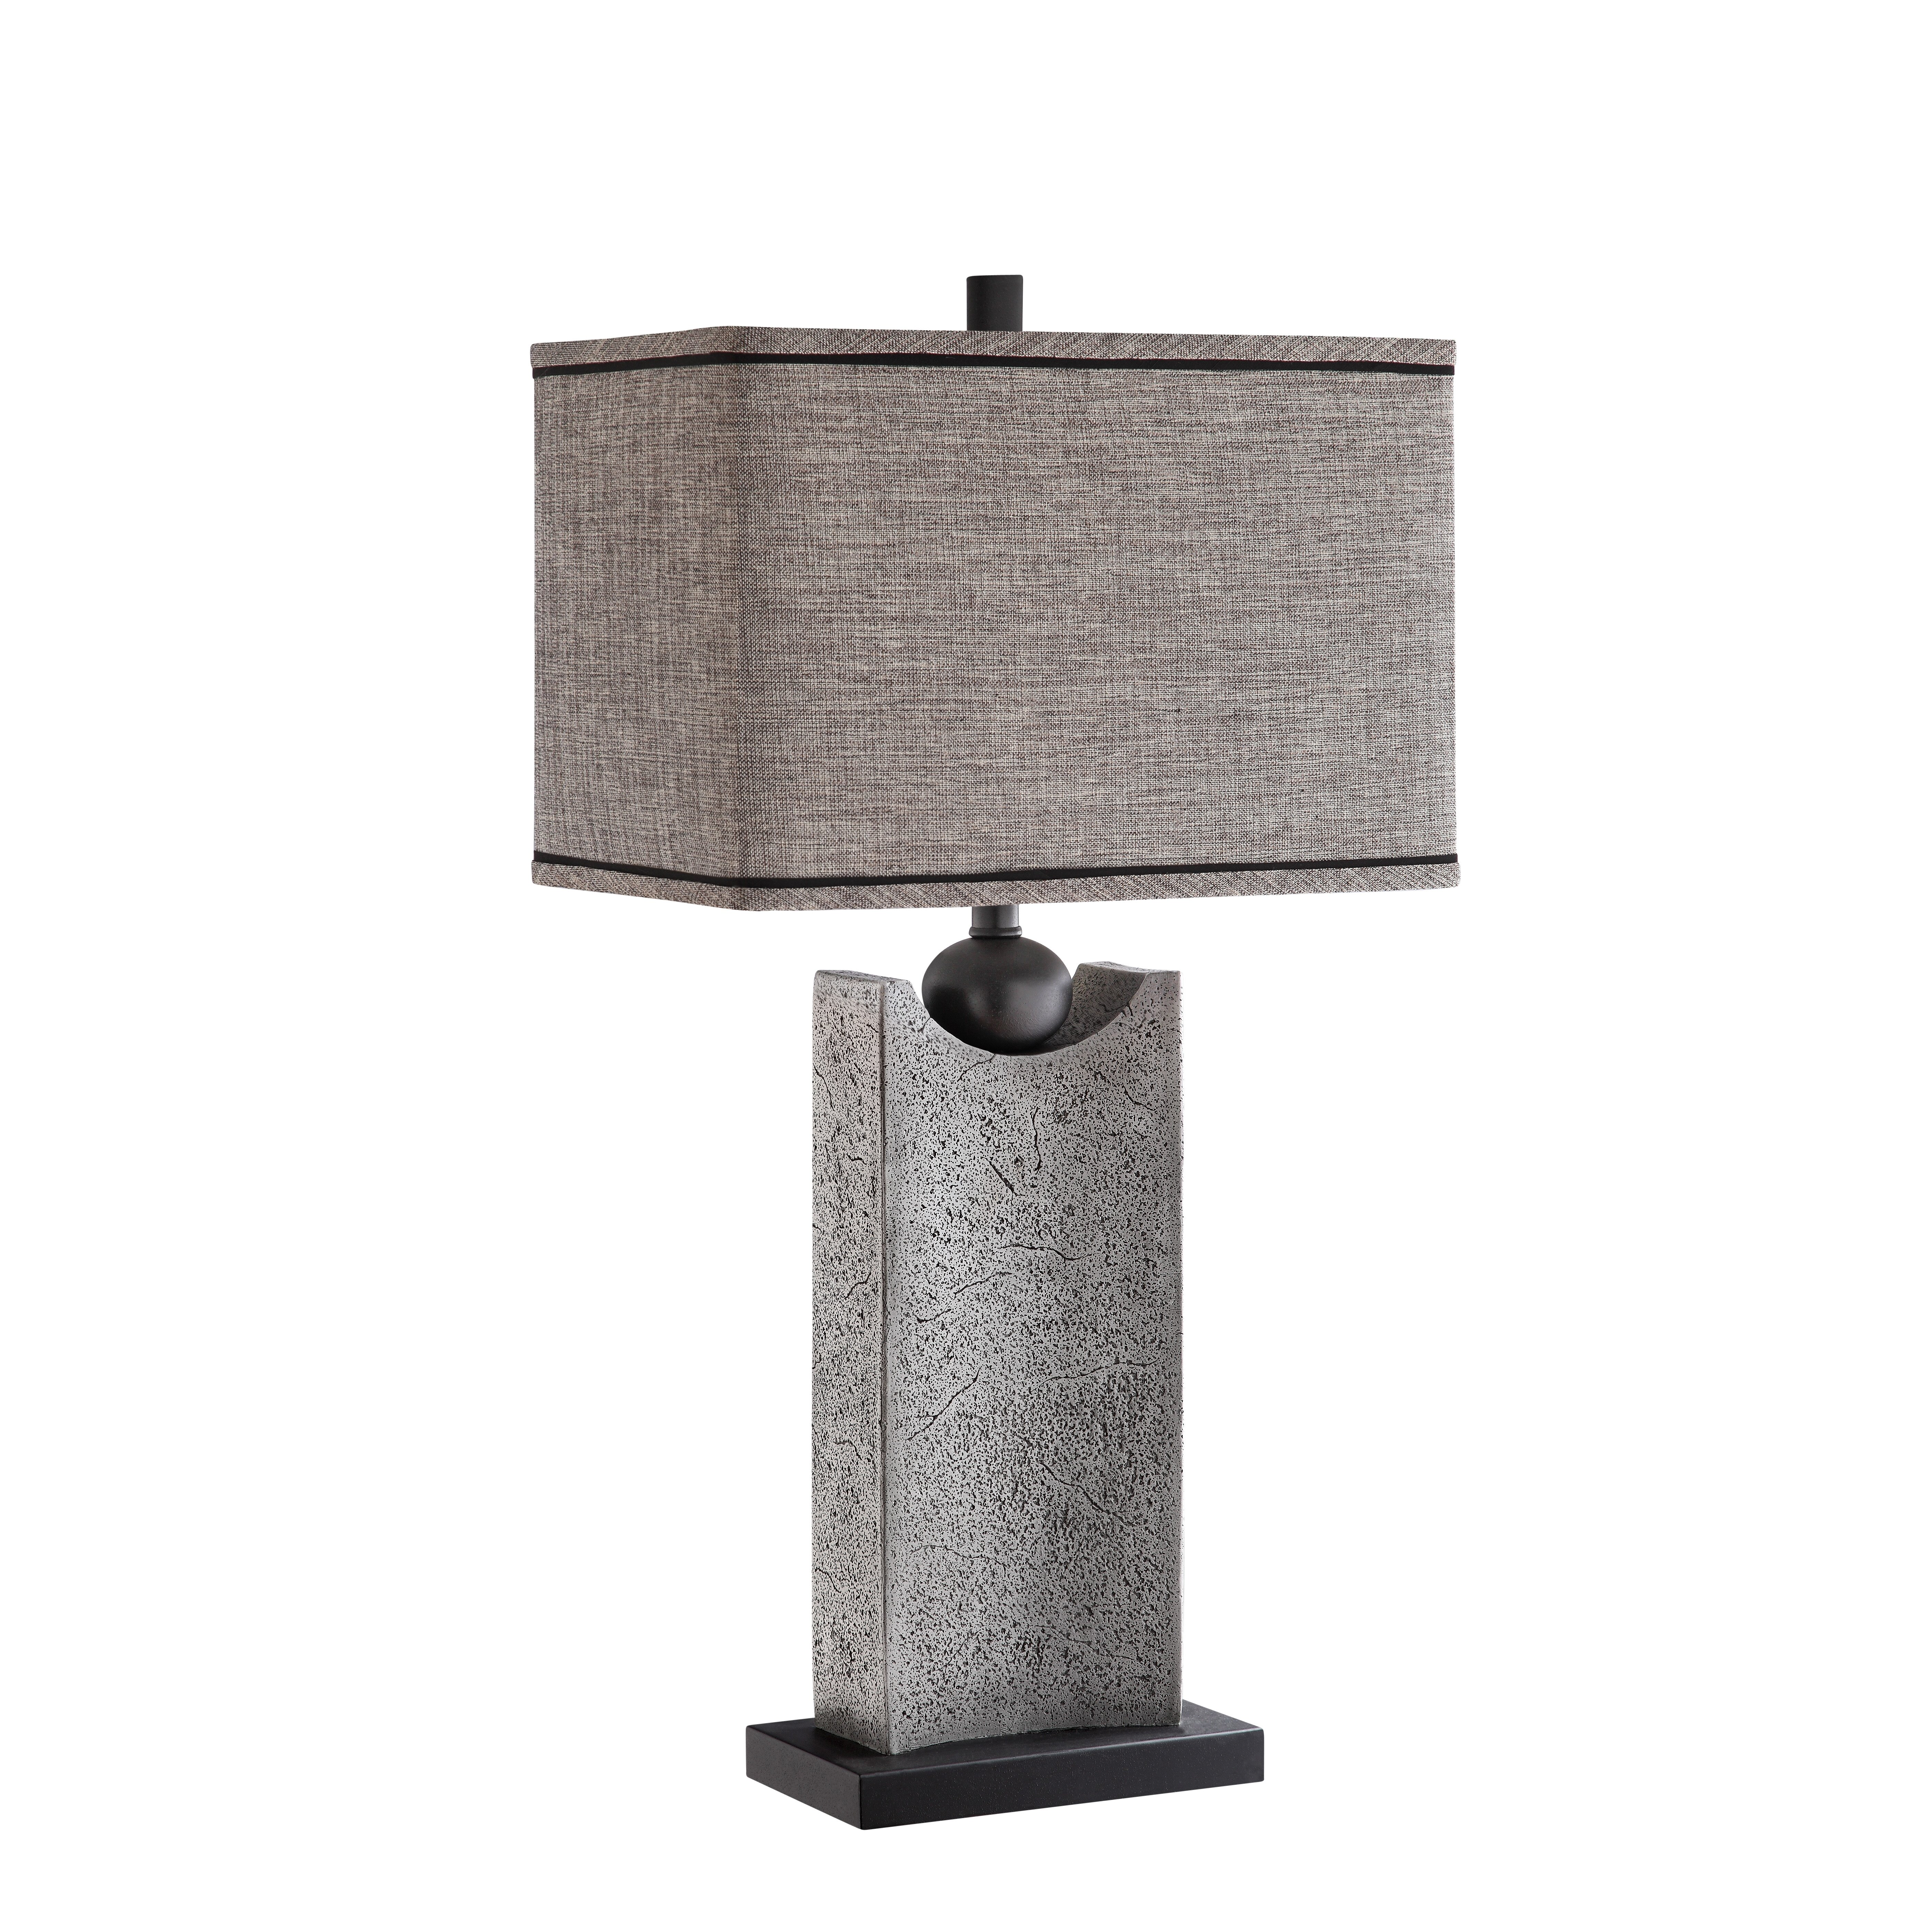 thornton 31 h table lamp with rectangular shade by stein world. Black Bedroom Furniture Sets. Home Design Ideas